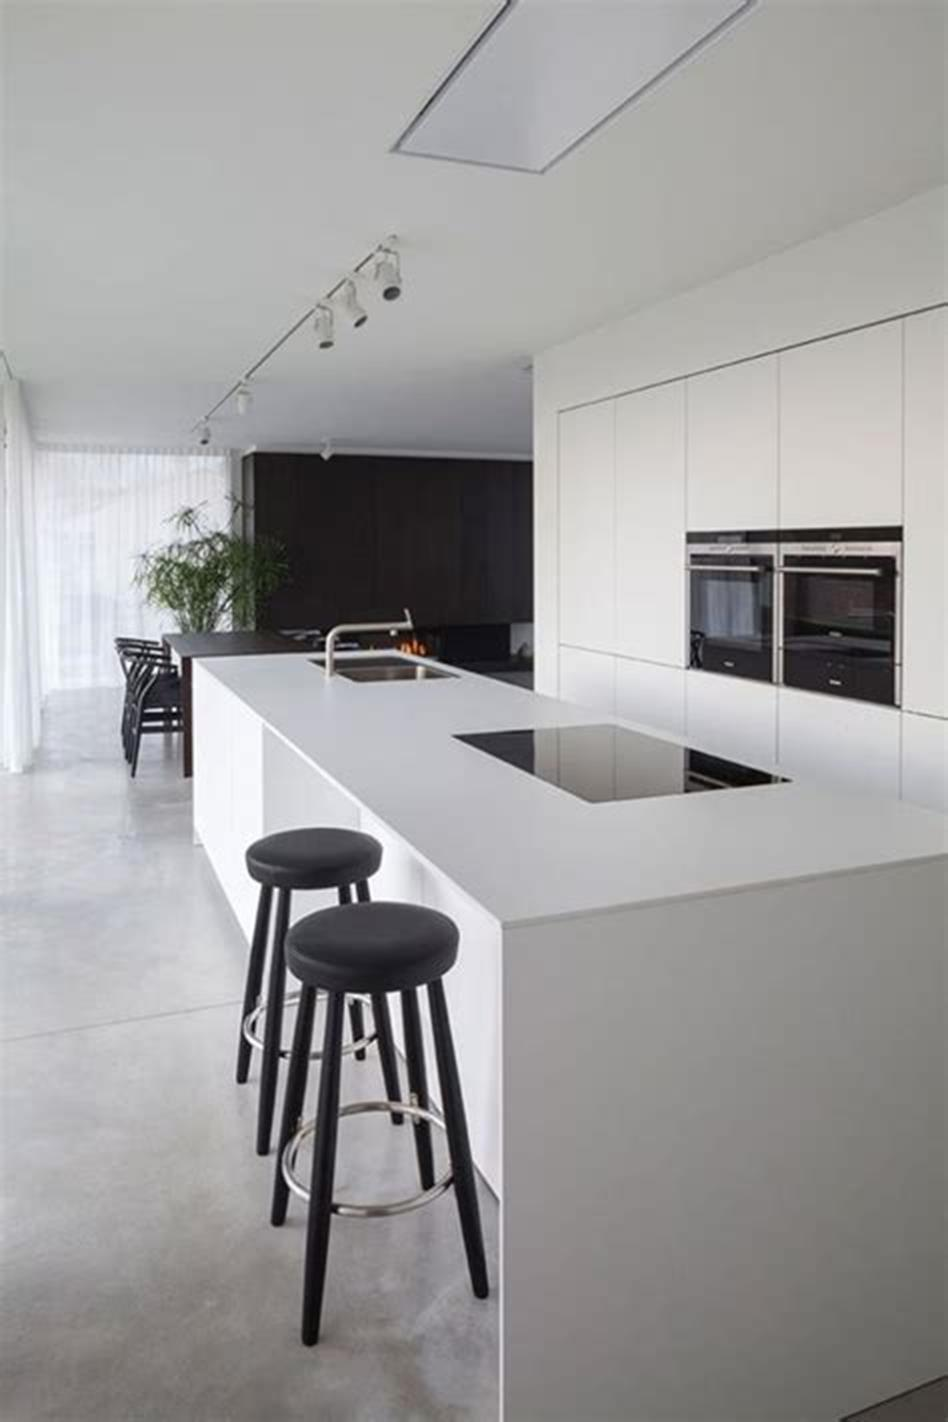 35 Stunning Contemporary Kitchen Design Ideas Youll Love 27